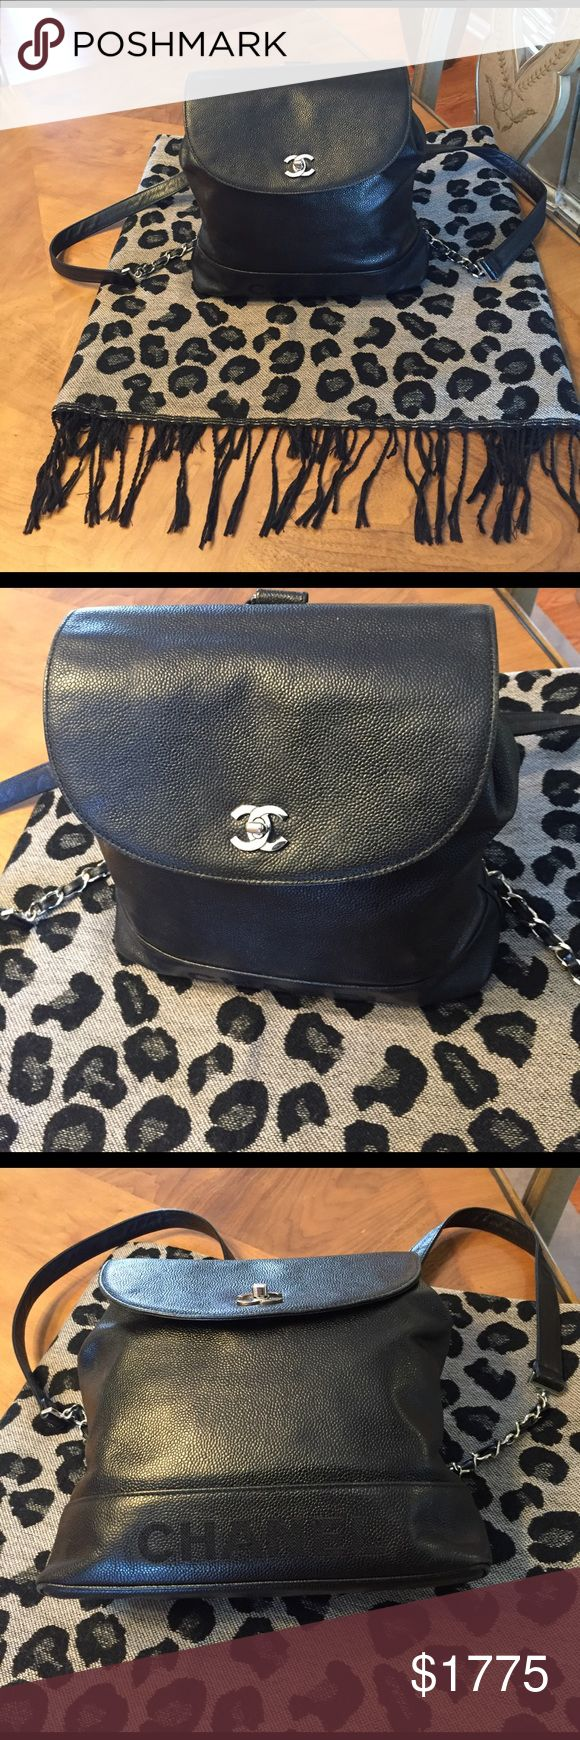 Authentic Chanel Bag Chanel bag excellent condition still has hologram sticker inside CHANEL Bags Backpacks